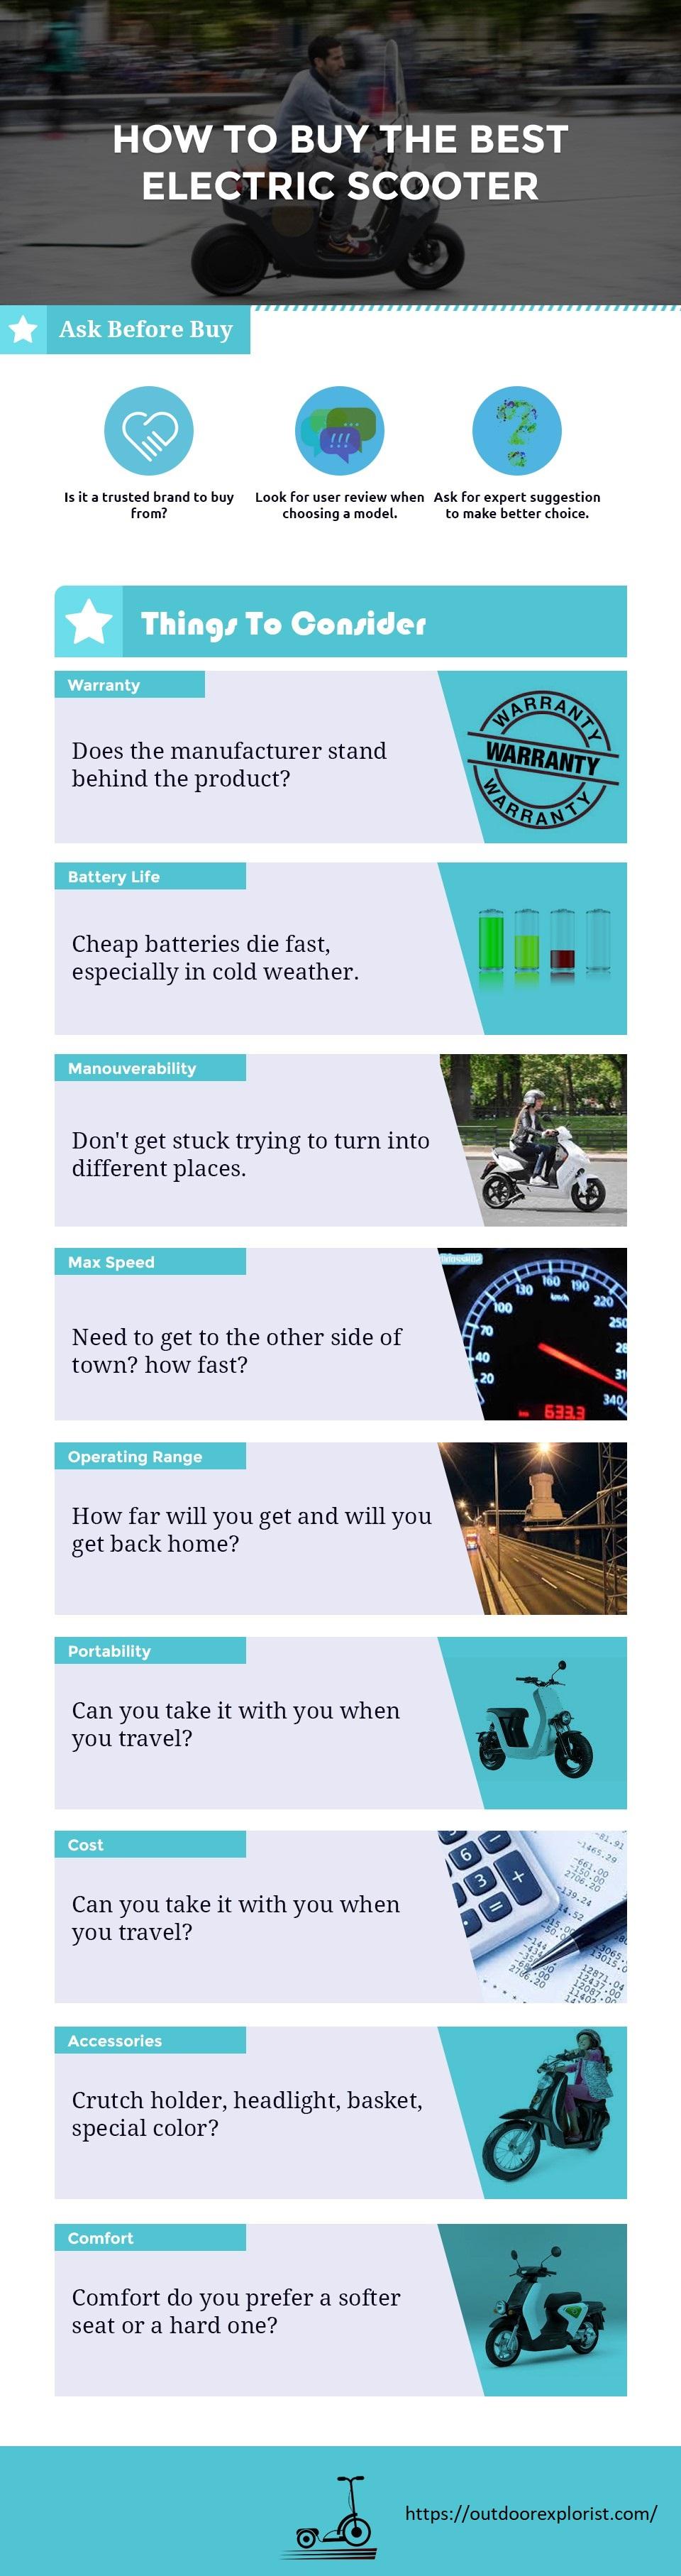 how-to-buy-the-best-electric-scooter-infographic-plaza